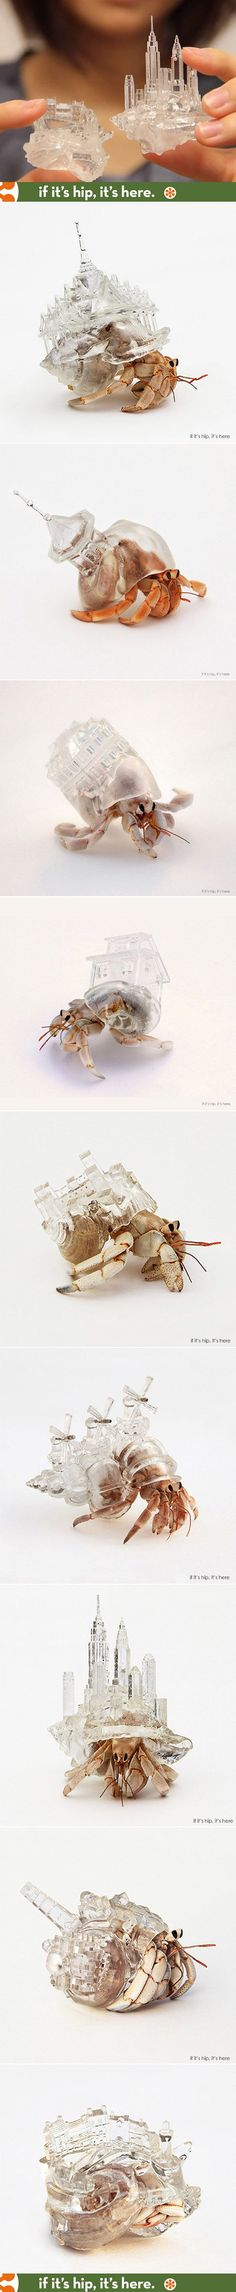 Artist Aki Inomata's 3D-printed acrylic shells for the hermit crab. See the entire project at http://www.ifitshipitshere.com/hermit-crabs-don-3d-printed-cityscapes-shells-project-migration/ <<< omg tell me you're just joking.... Holy [not so holy word] Maybe something for 3D Printer Chat?